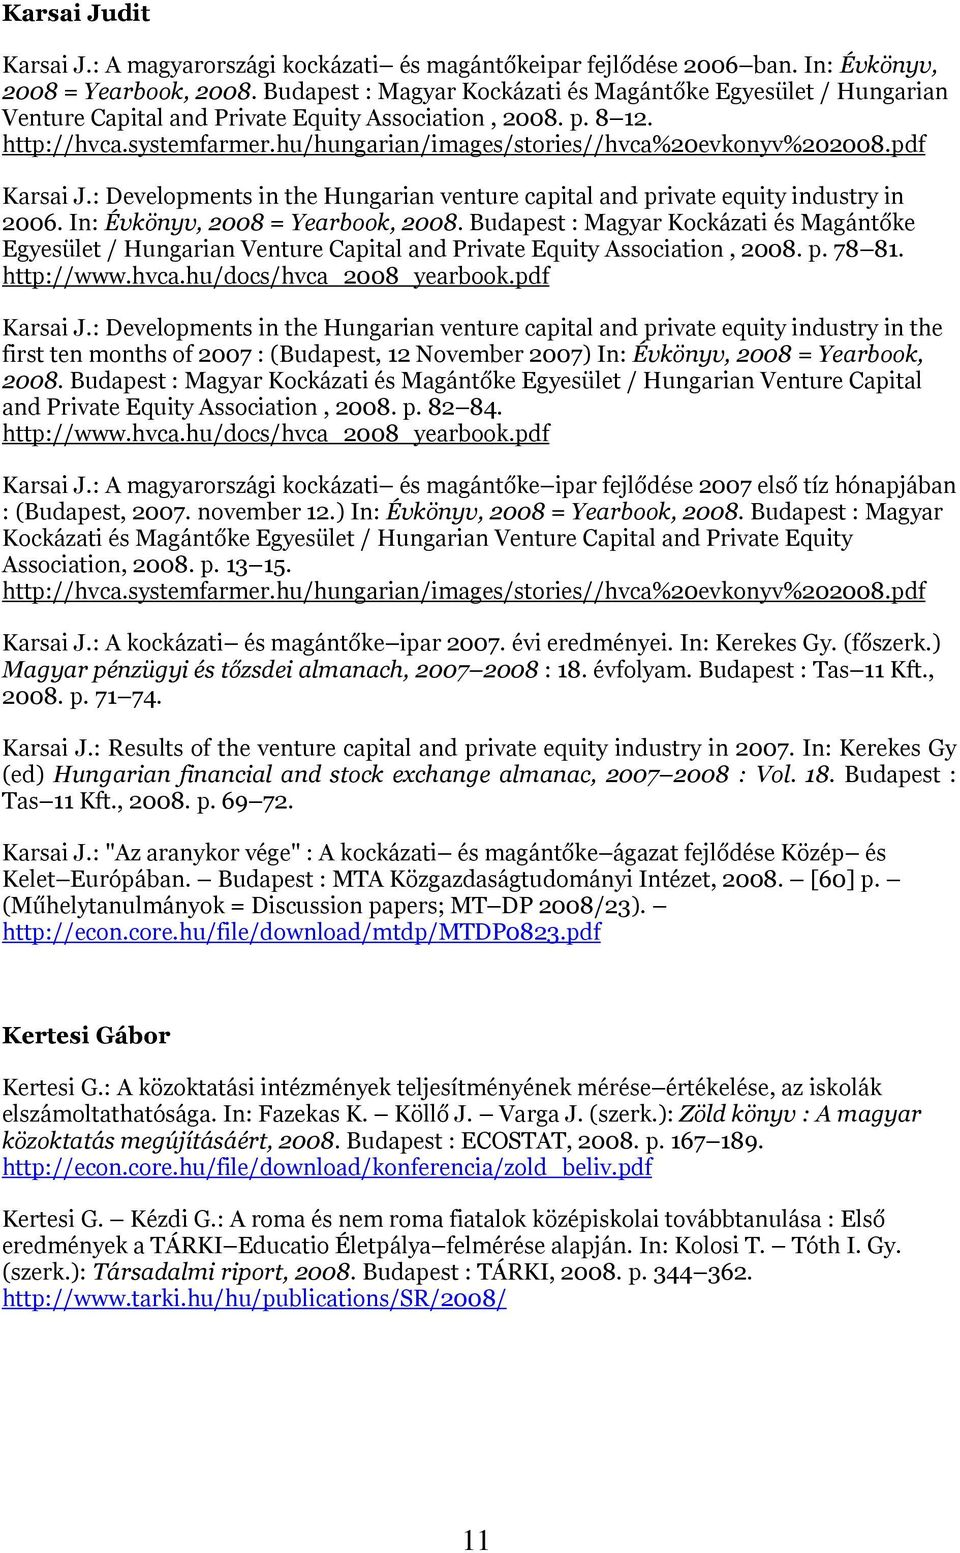 hu/hungarian/images/stories//hvca%20evkonyv%202008.pdf Karsai J.: Developments in the Hungarian venture capital and private equity industry in 2006. In: Évkönyv, 2008 = Yearbook, 2008.